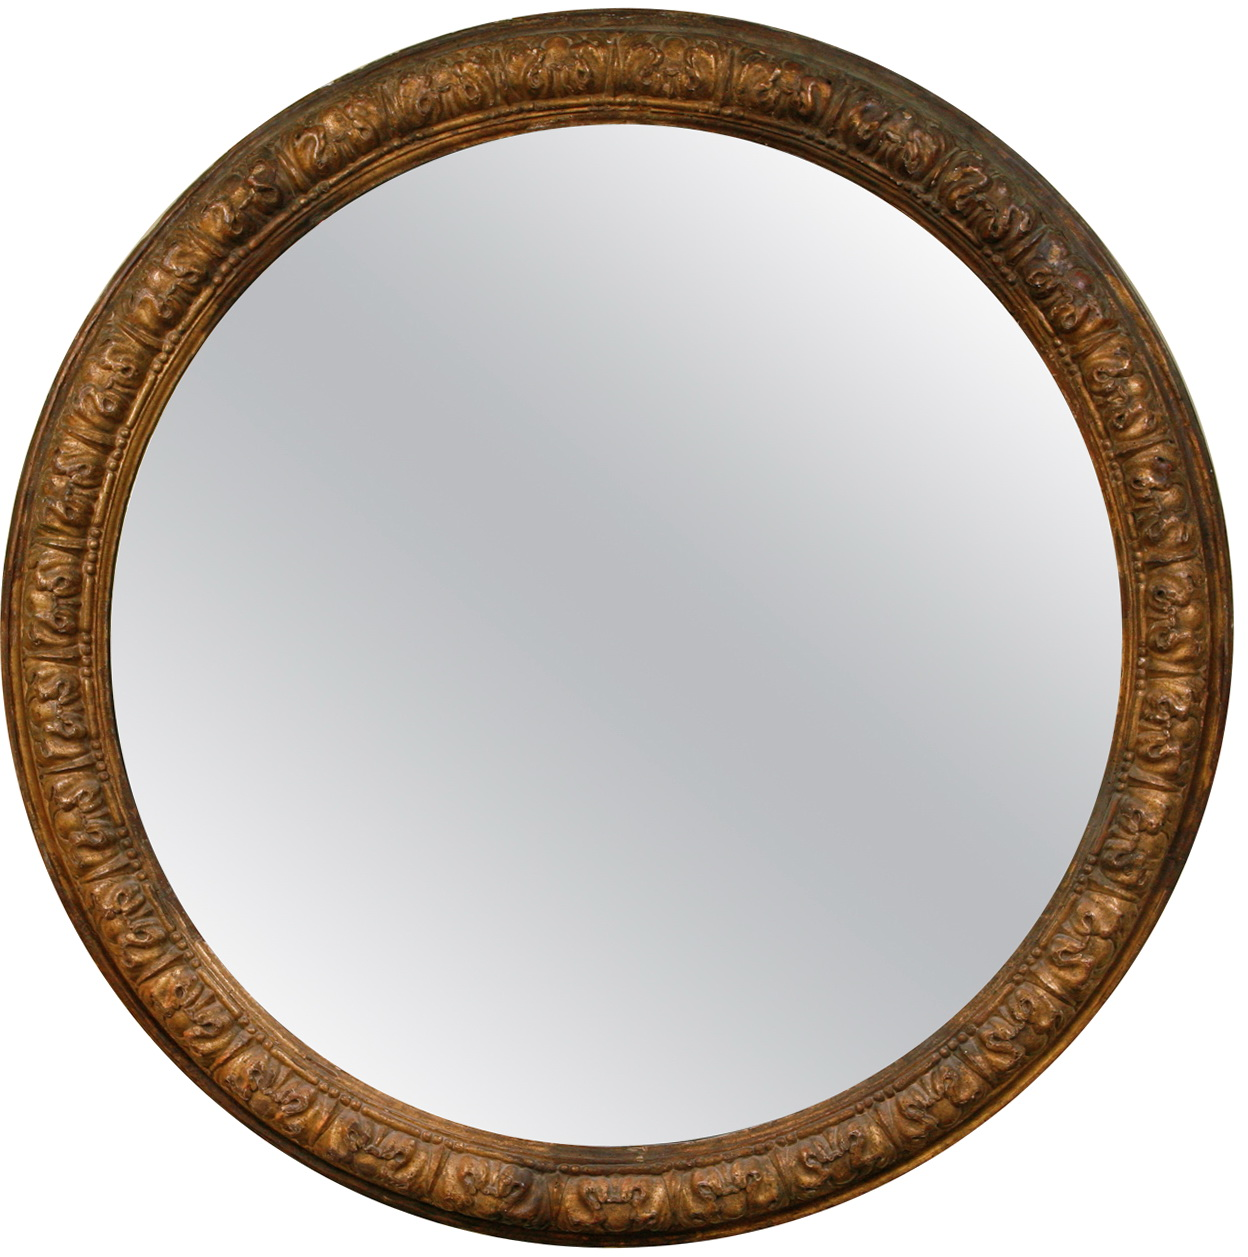 Large Round Wall Mirror Home Design Ideas